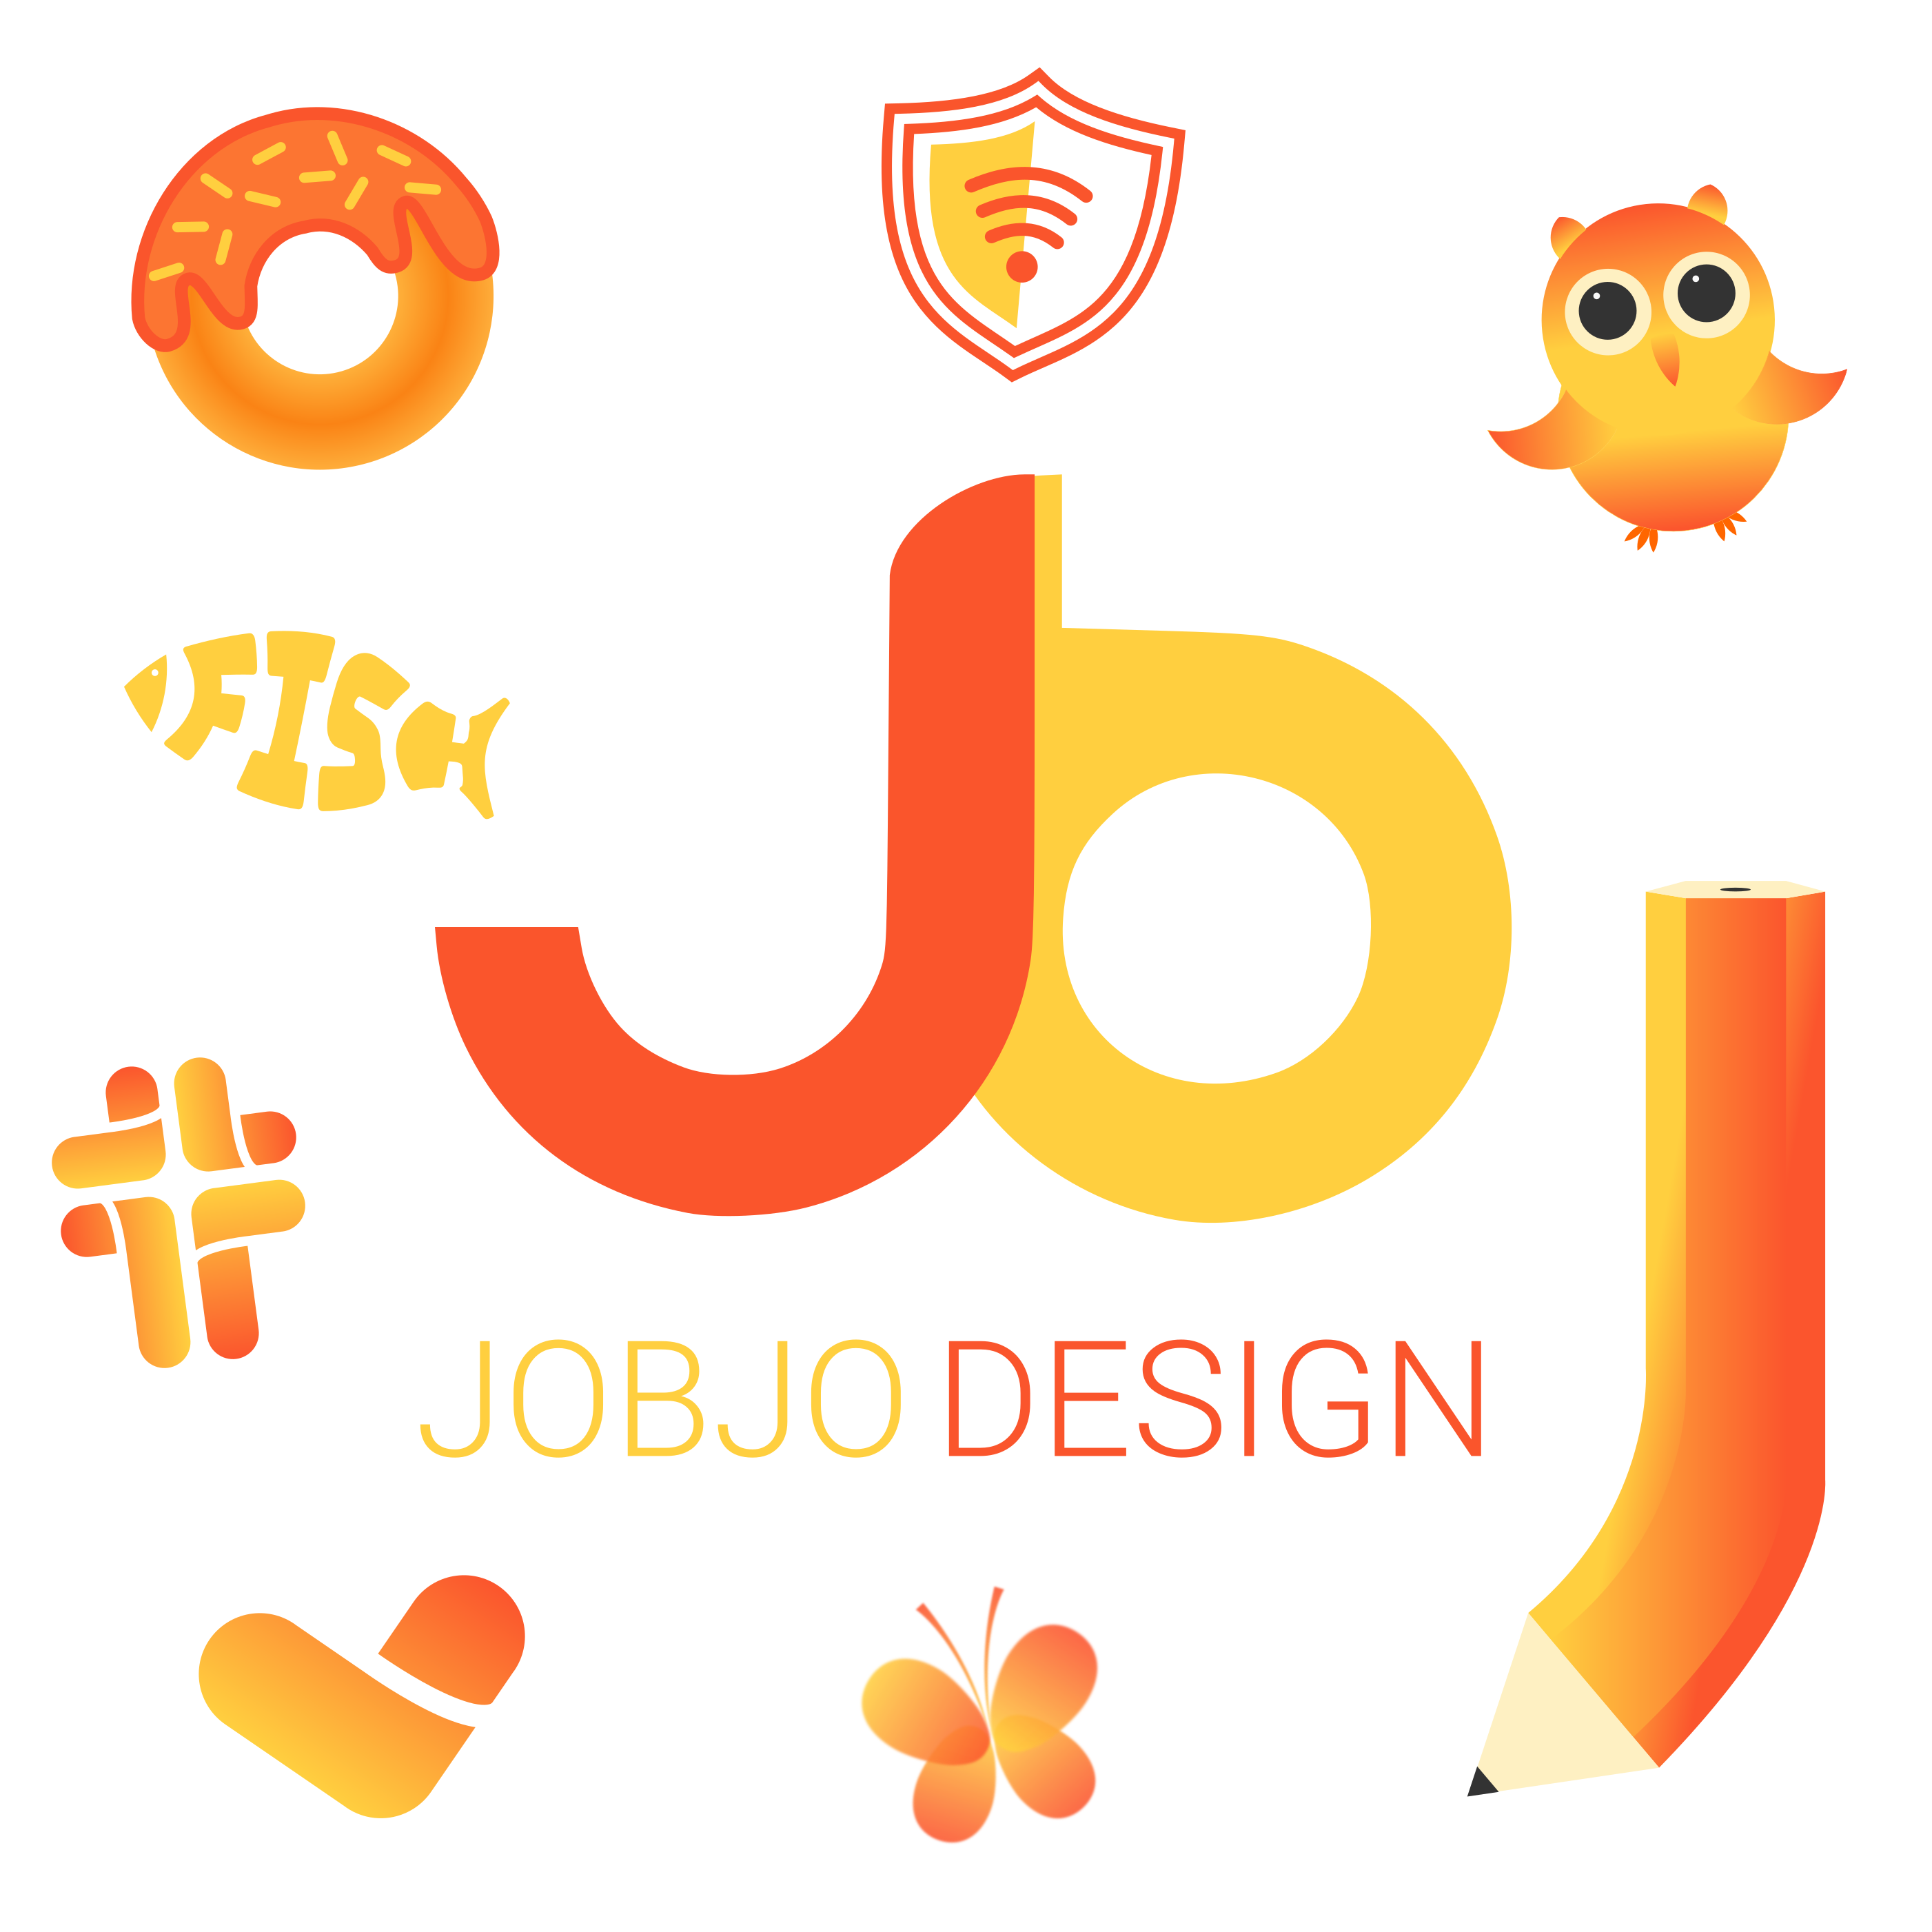 jobjo design logo collage white